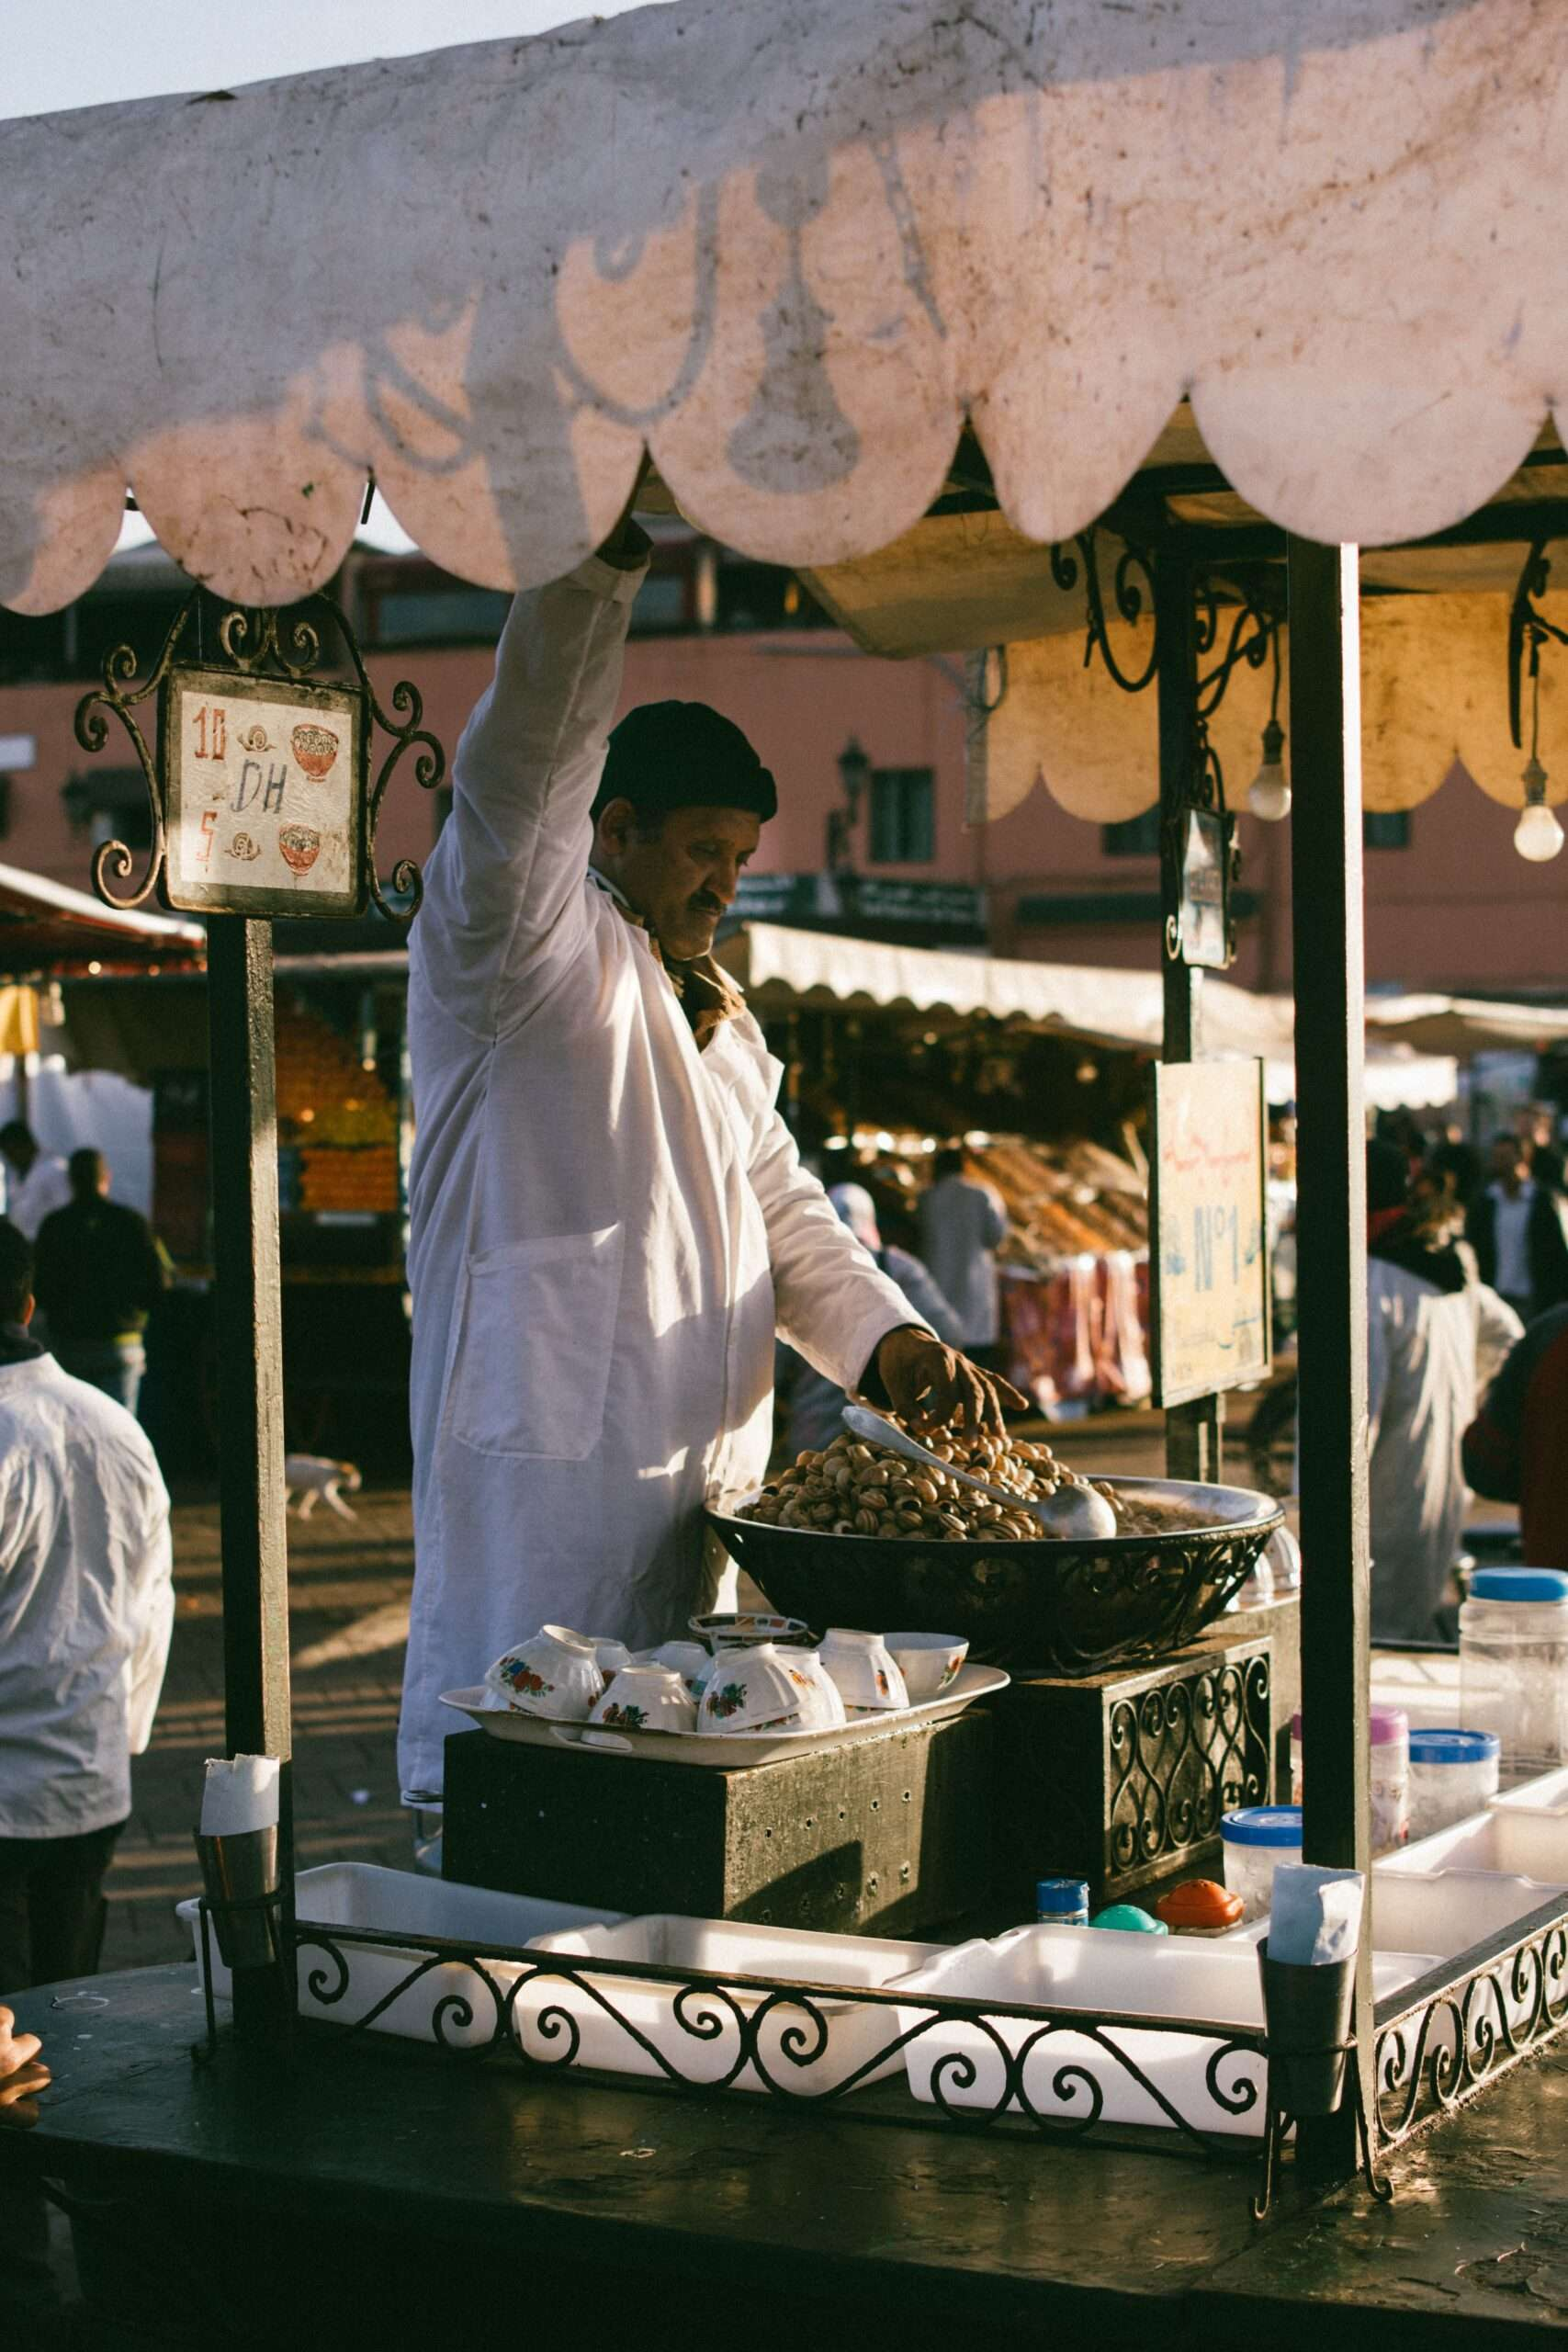 man wearing a white overcoat at a market stand in Marrakesh